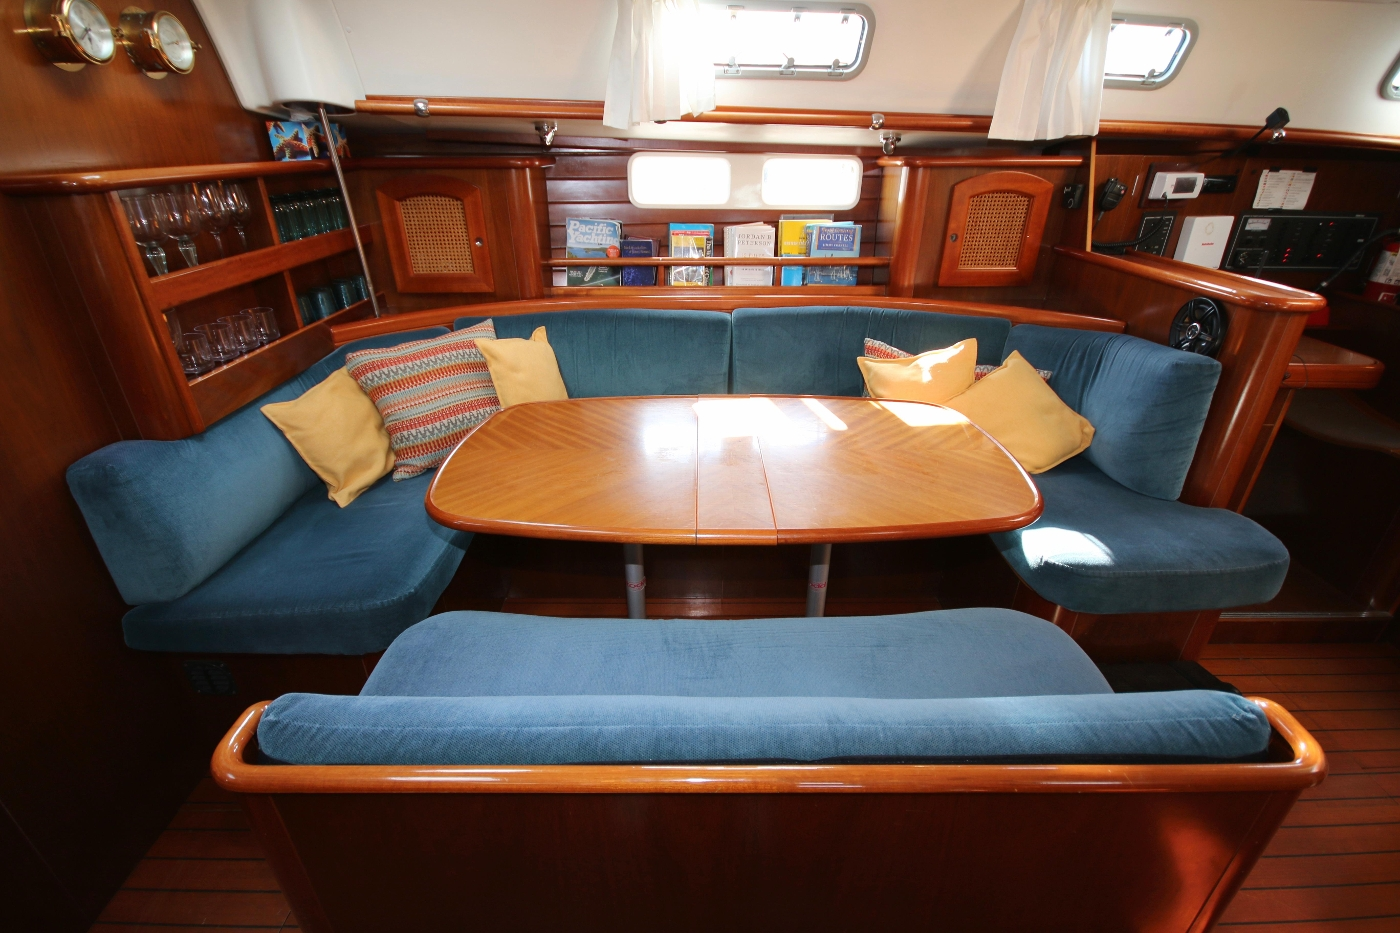 1997 Beneteau Oceanis 461, Settee and dining table